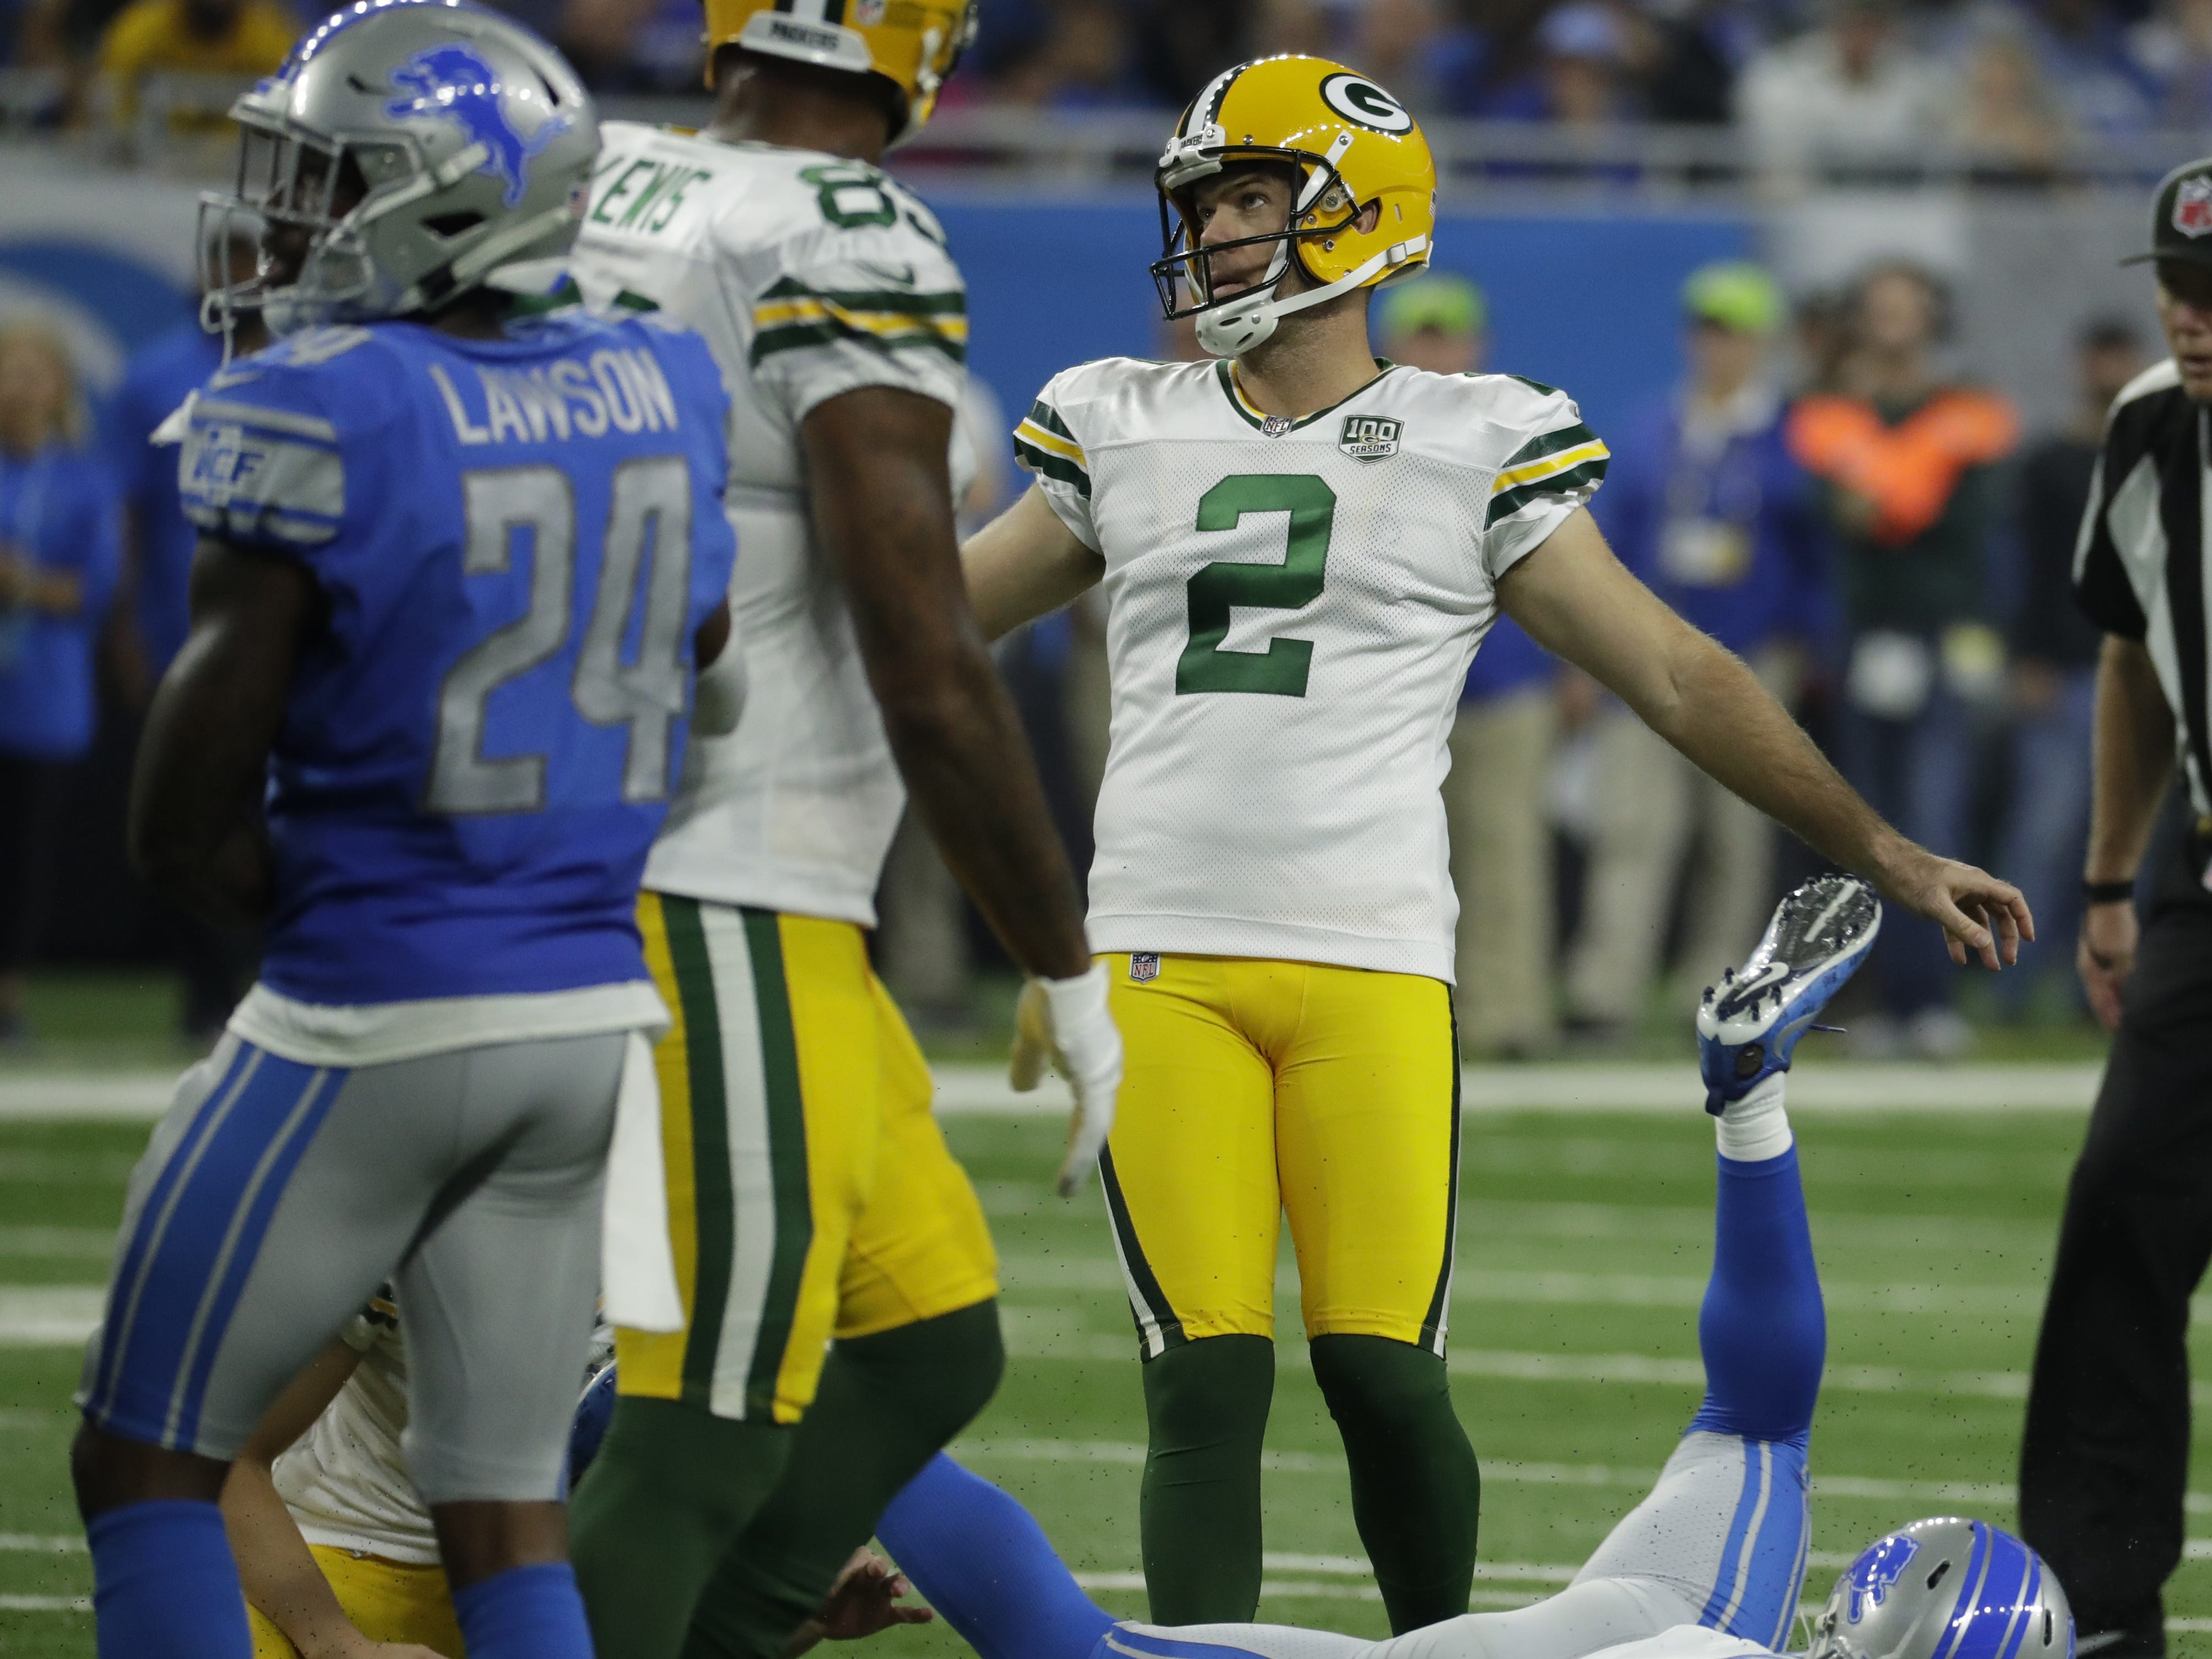 Green Bay Packers kicker Mason Crosby (2) misses his second field goal during the Green Bay Packers vs. Detroit Lions NFL game at Ford Field, Detroit, Sunday, October 7, 2018.